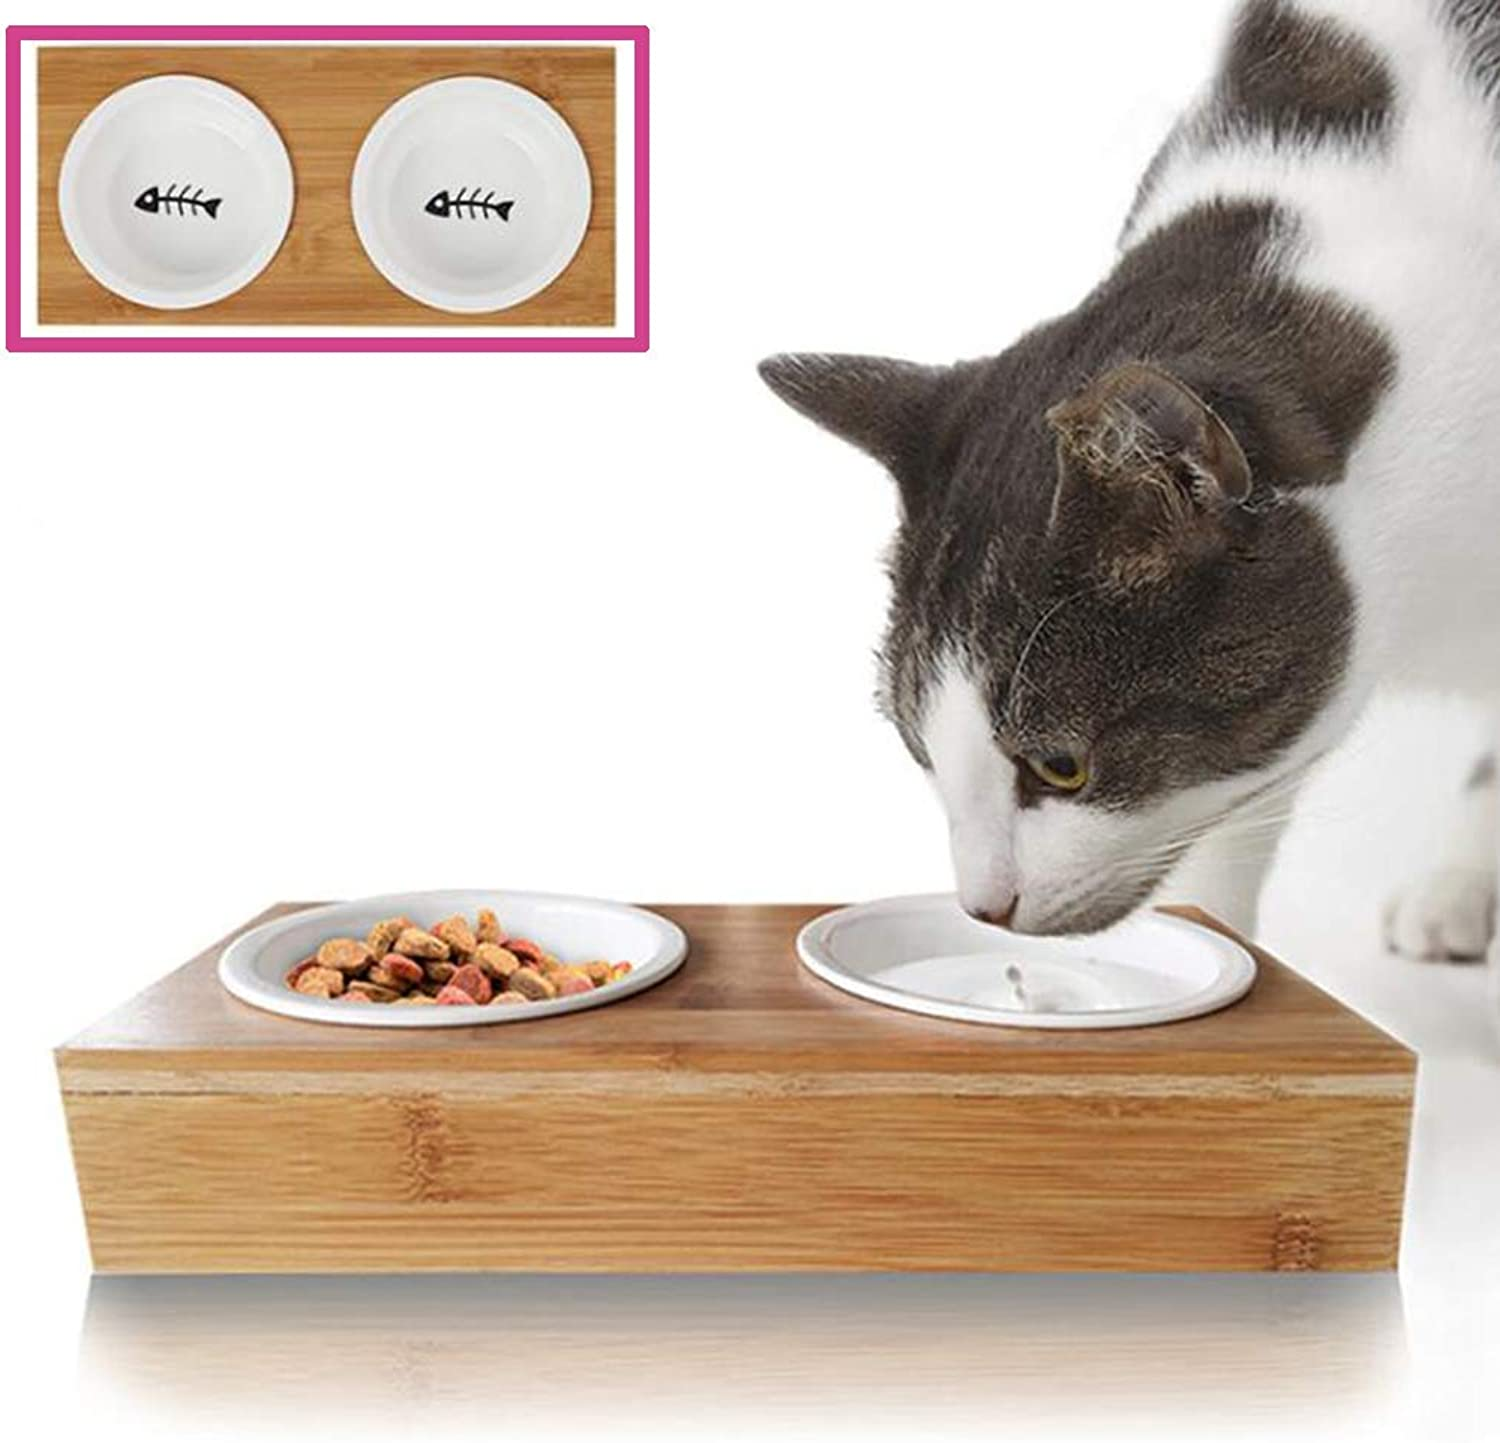 Bamboo Elevated Pet Bowl Dog Cat Food Bowls with 2 Ceramics Bowls Suit for Small and Medium Dogs and Cats Bamboo Elevated Pet Feeder